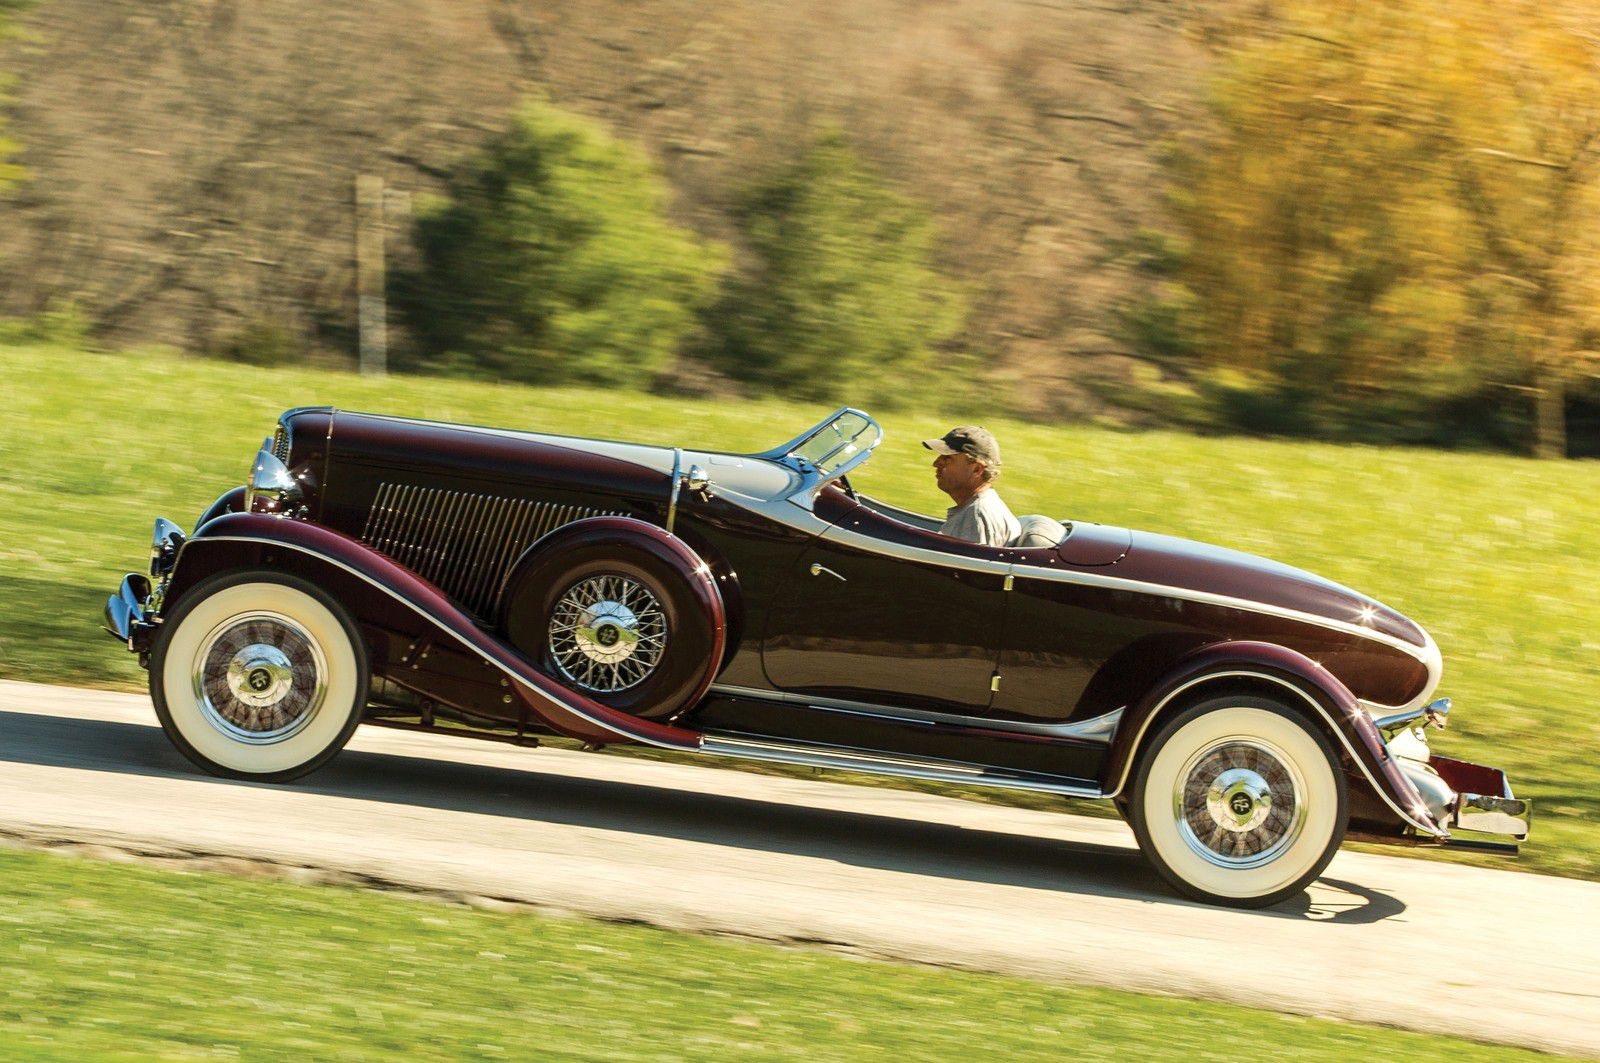 VOITURES DE LEGENDE (1197) : AUBURN V12 1250 SALON DUAL RATIO BOATTAIL SPEEDSTER - 1934